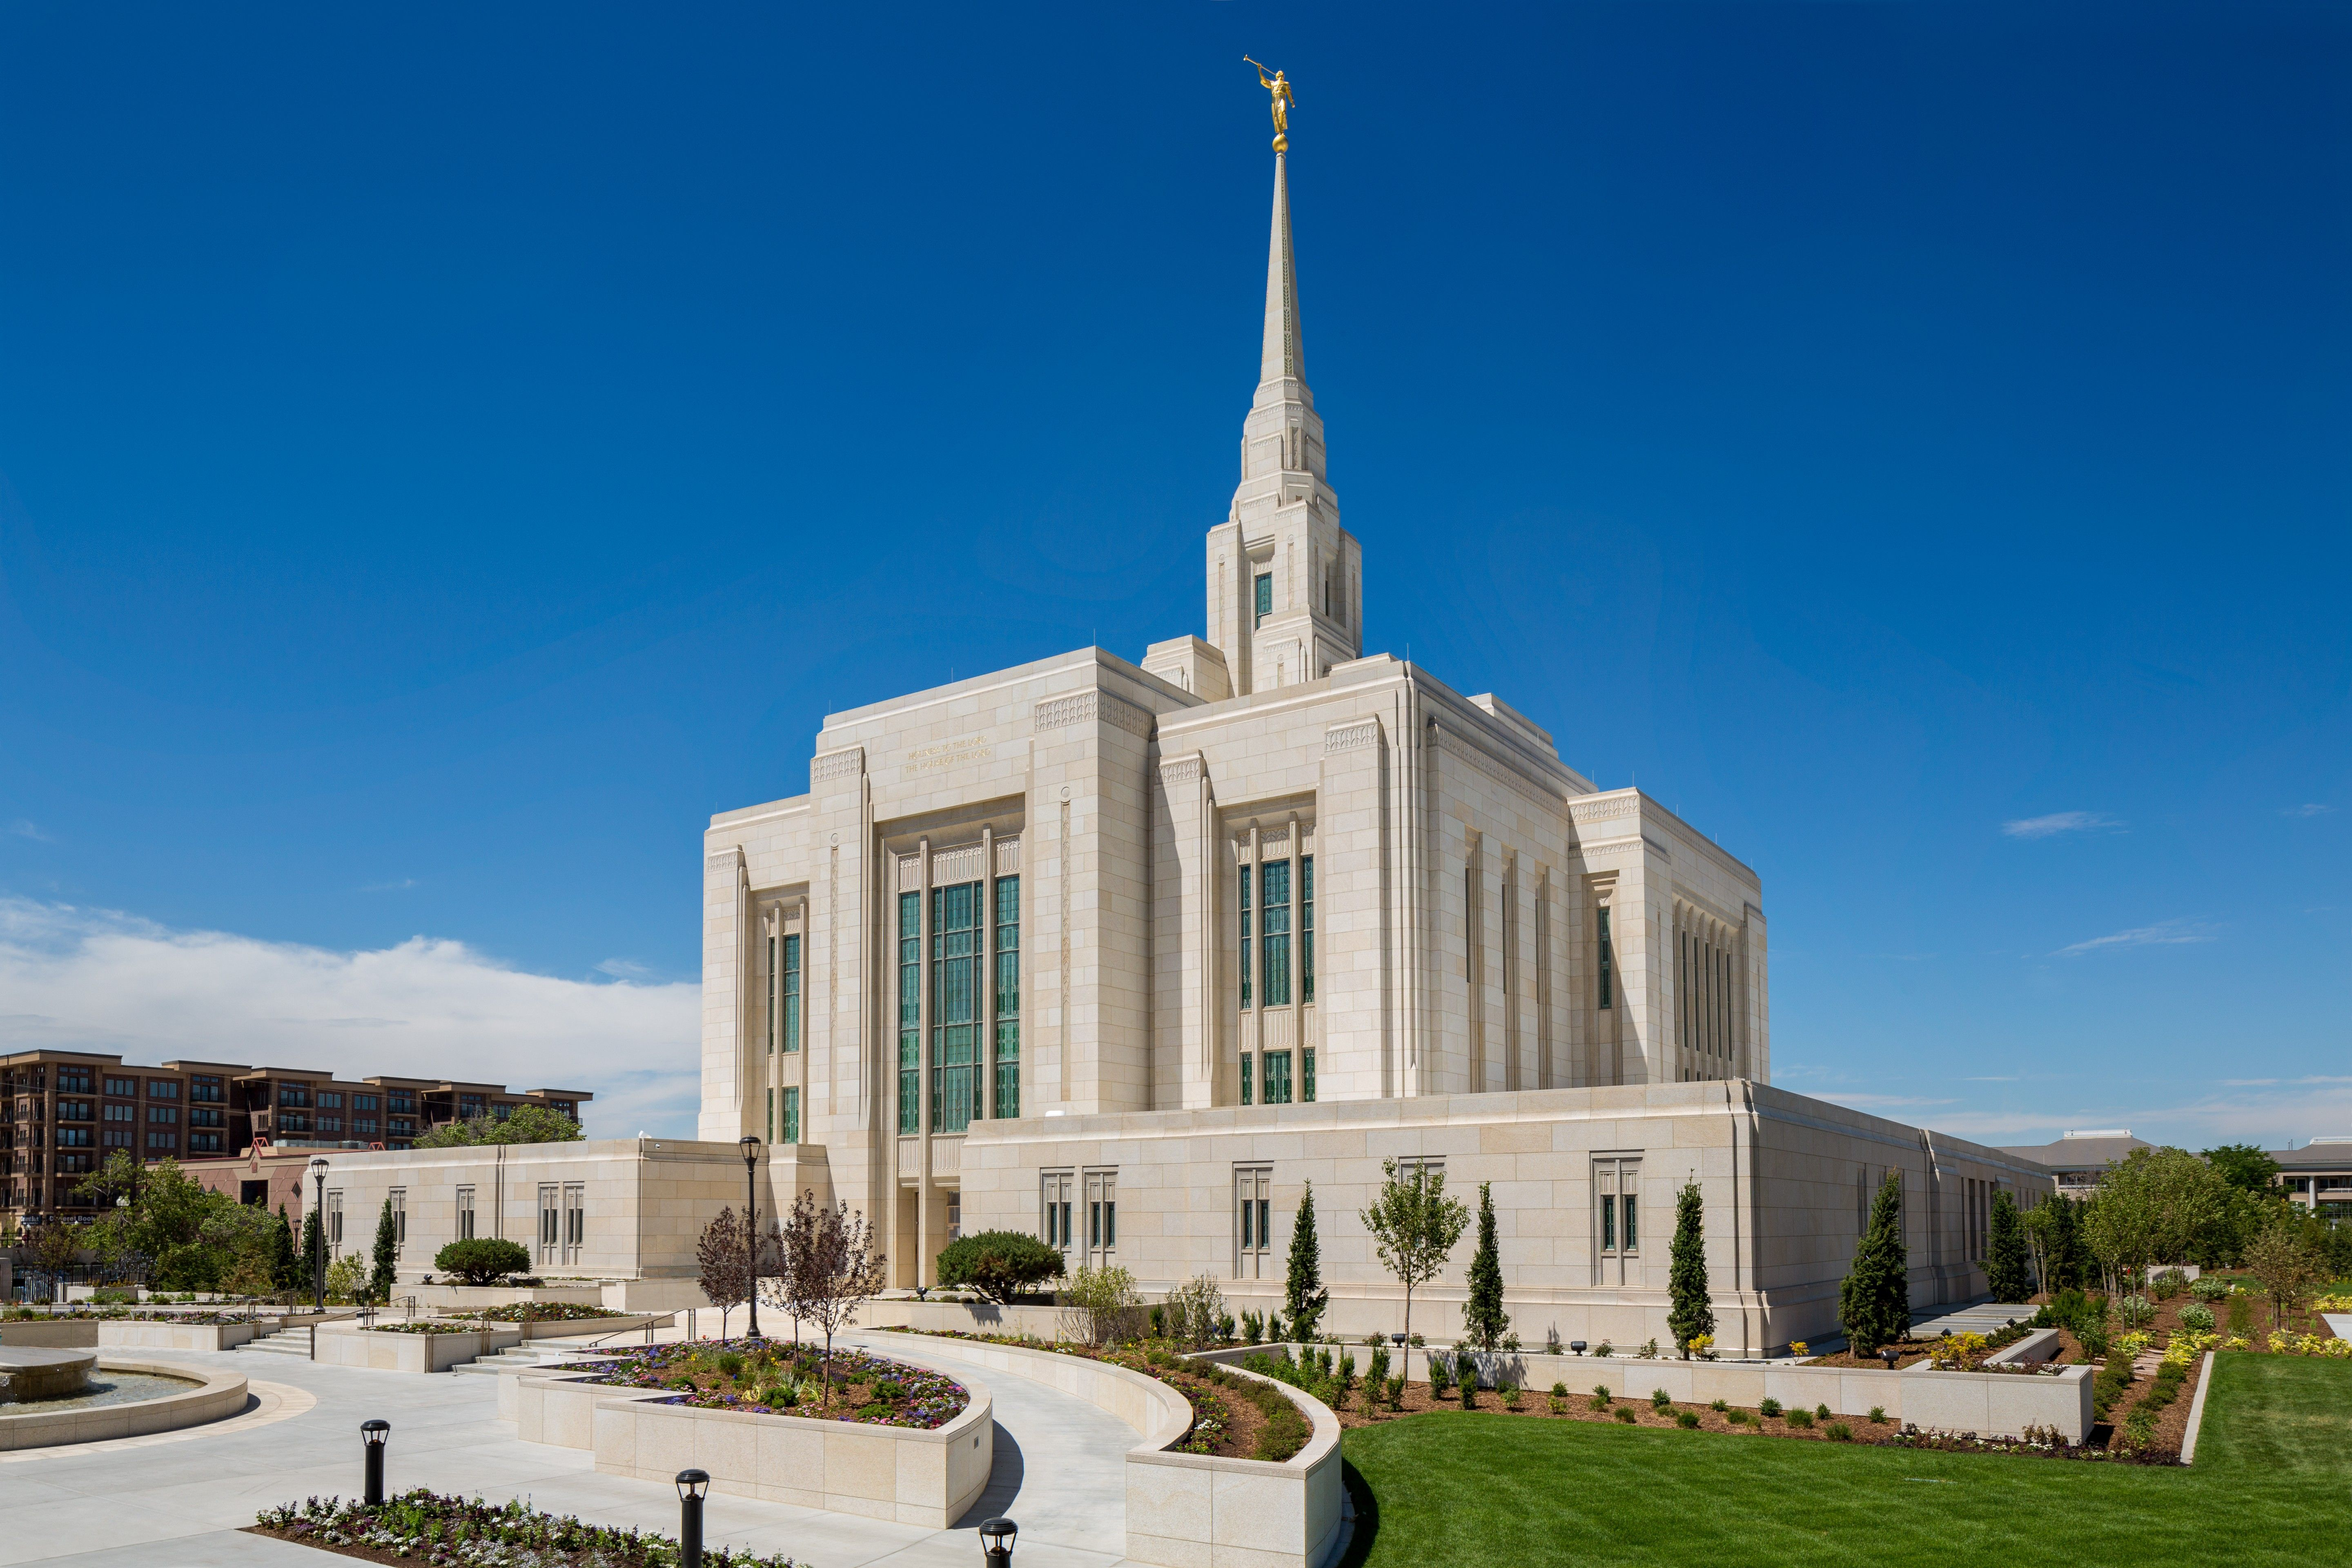 An artist's rendition of the Ogden Utah Temple, including the entrance and scenery.